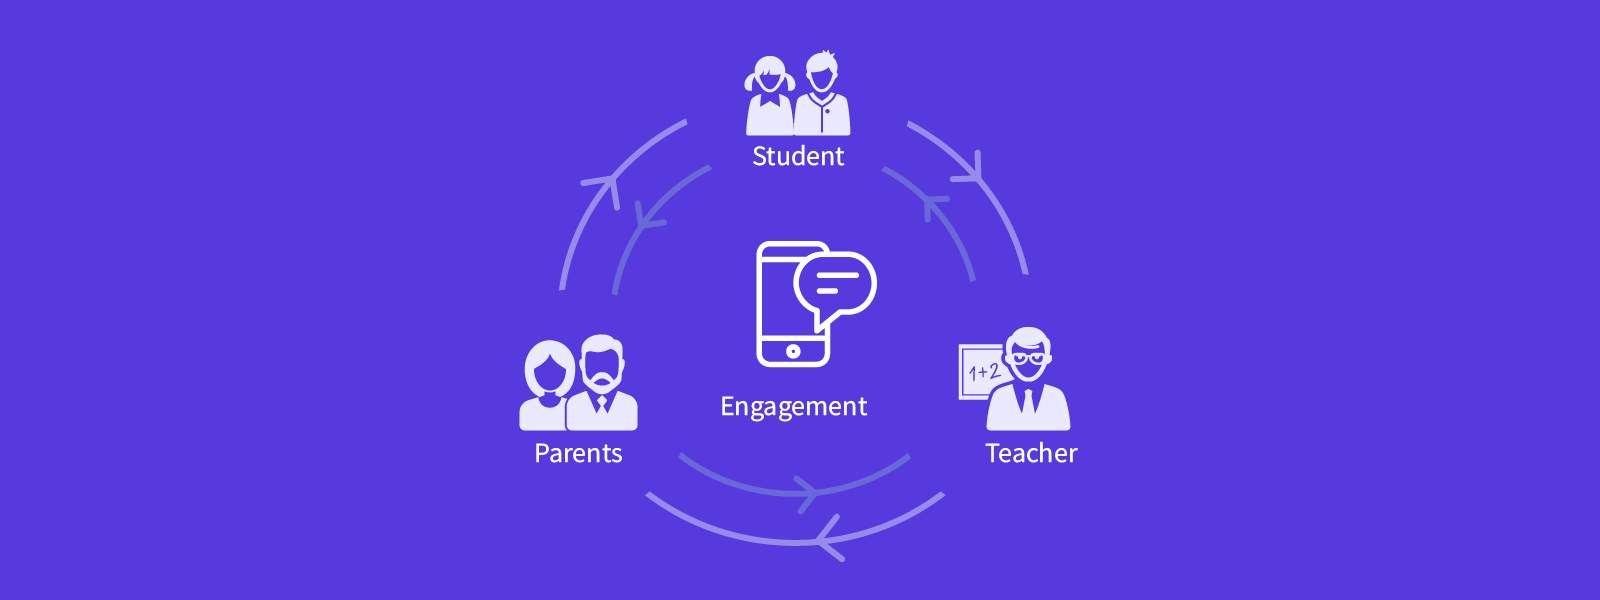 Engagement-parents-teacher-students